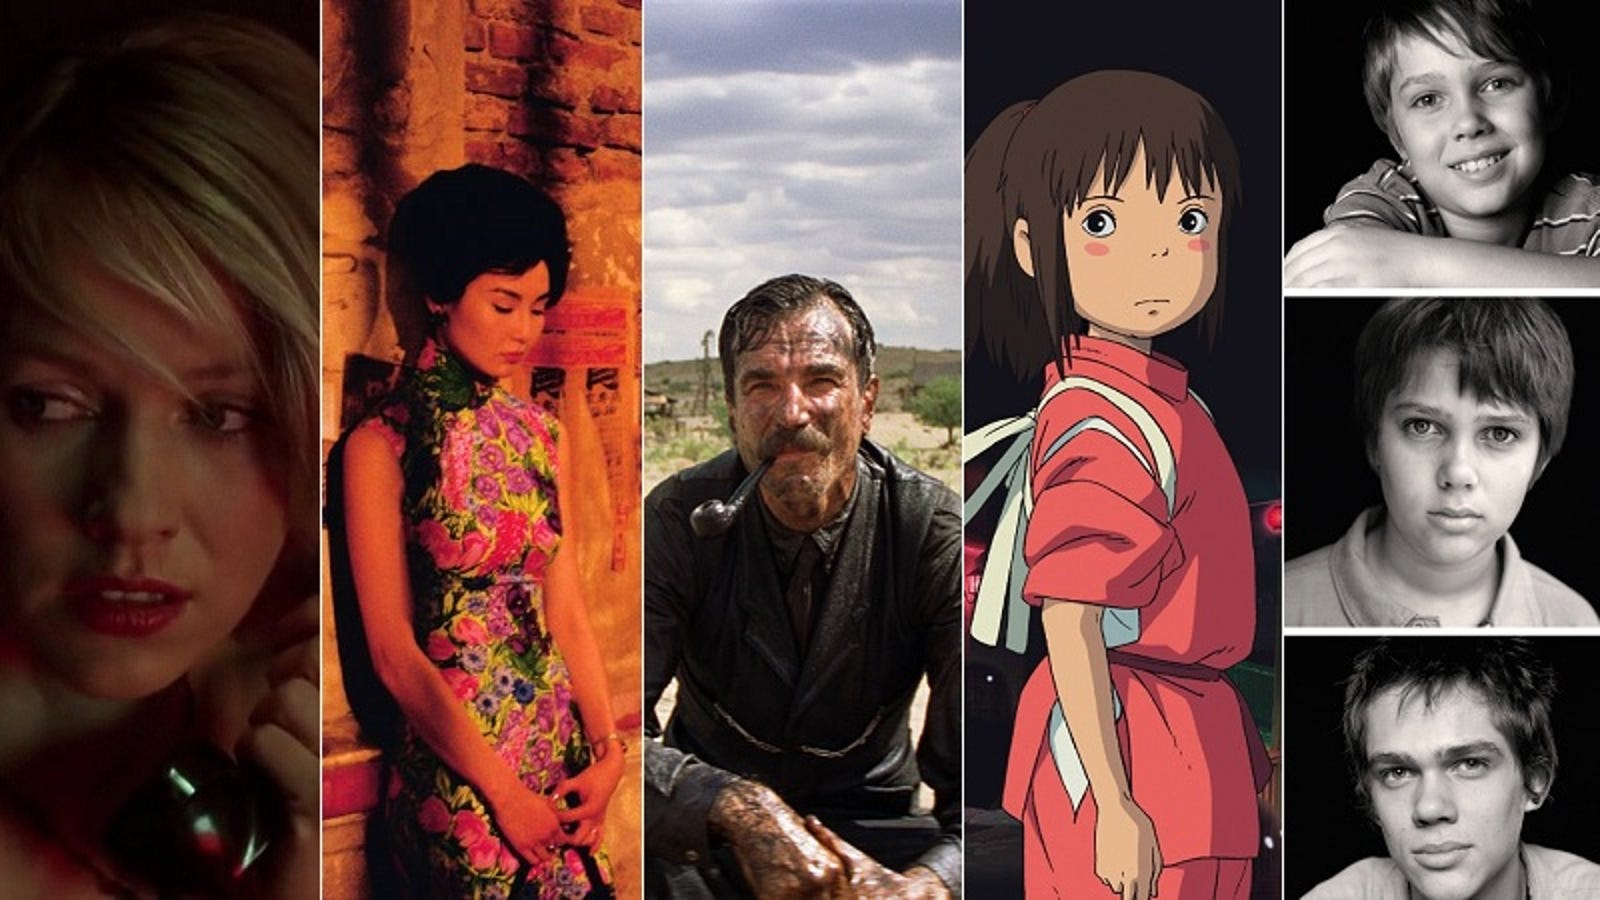 The 25 Best Films of the 21st Century, And Where to Watch Them